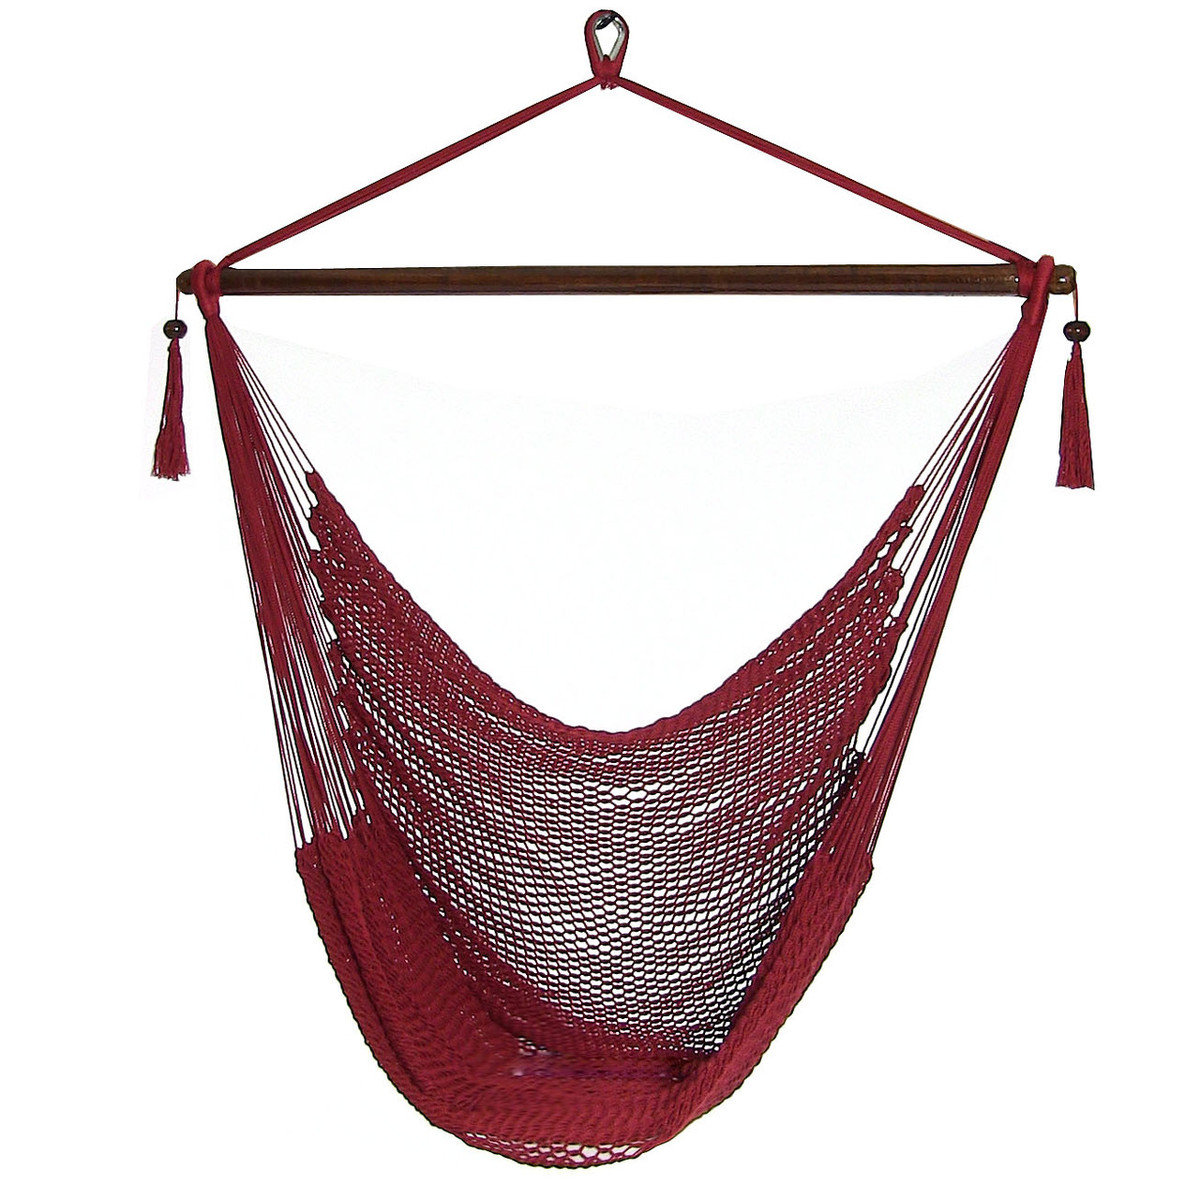 Sunnydaze Caribbean Extra Large Hammock Chair, Soft Spun Polyester Rope, 40  Inch Wide Seat